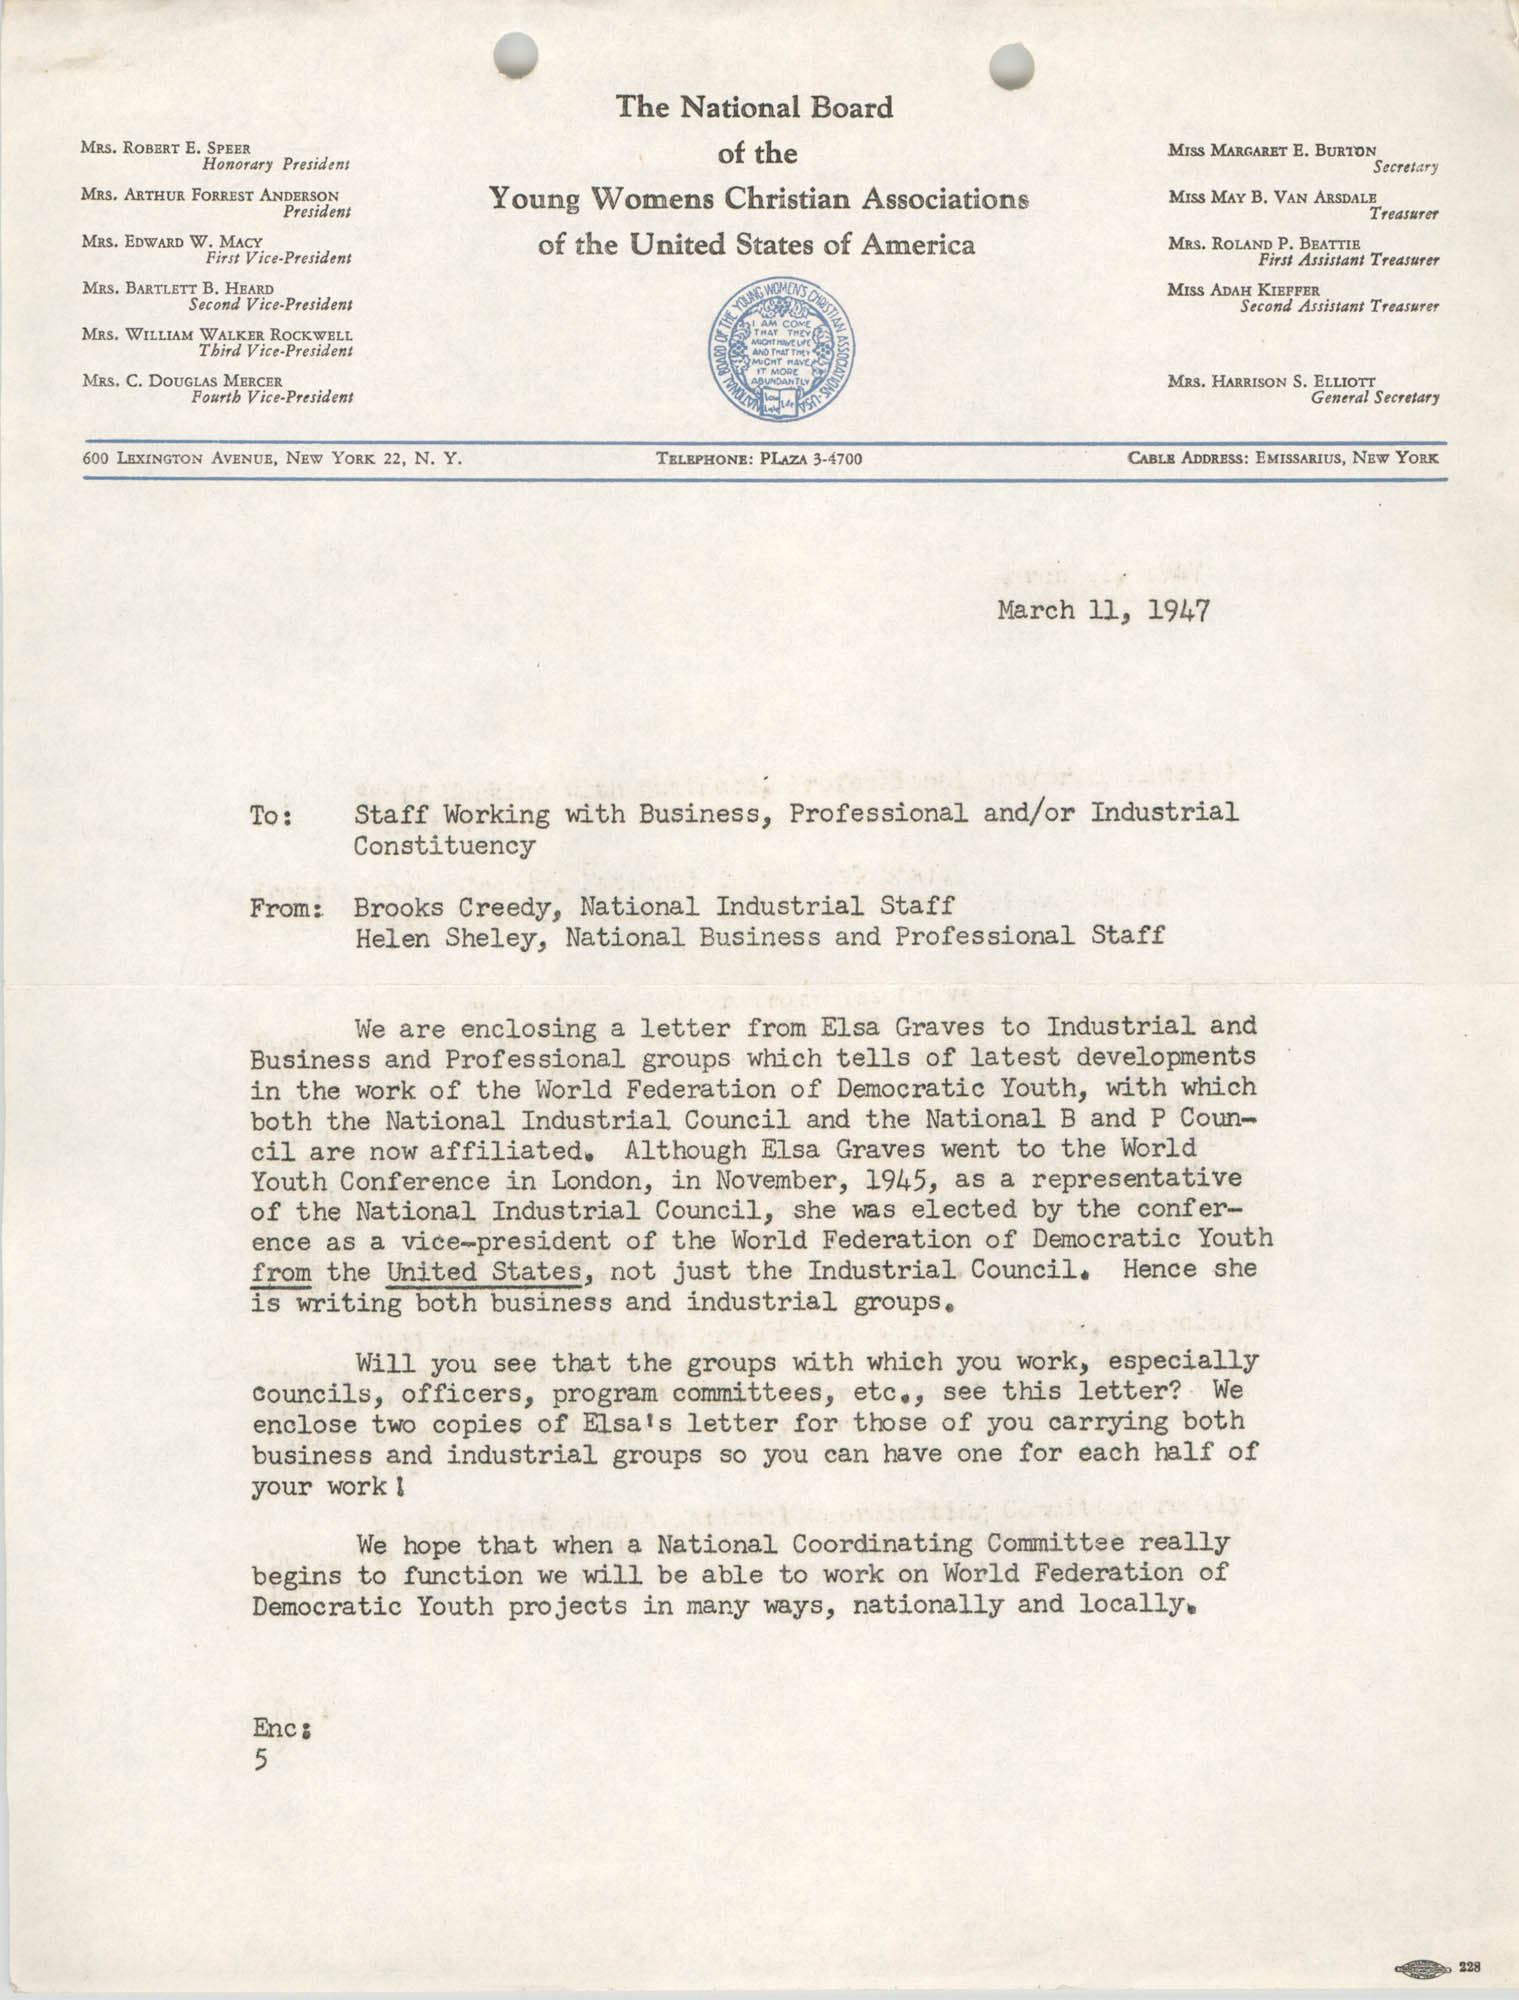 National Board of the Y.W.C.A. Business and Professional Girls Council Correspondence, March 11, 1947